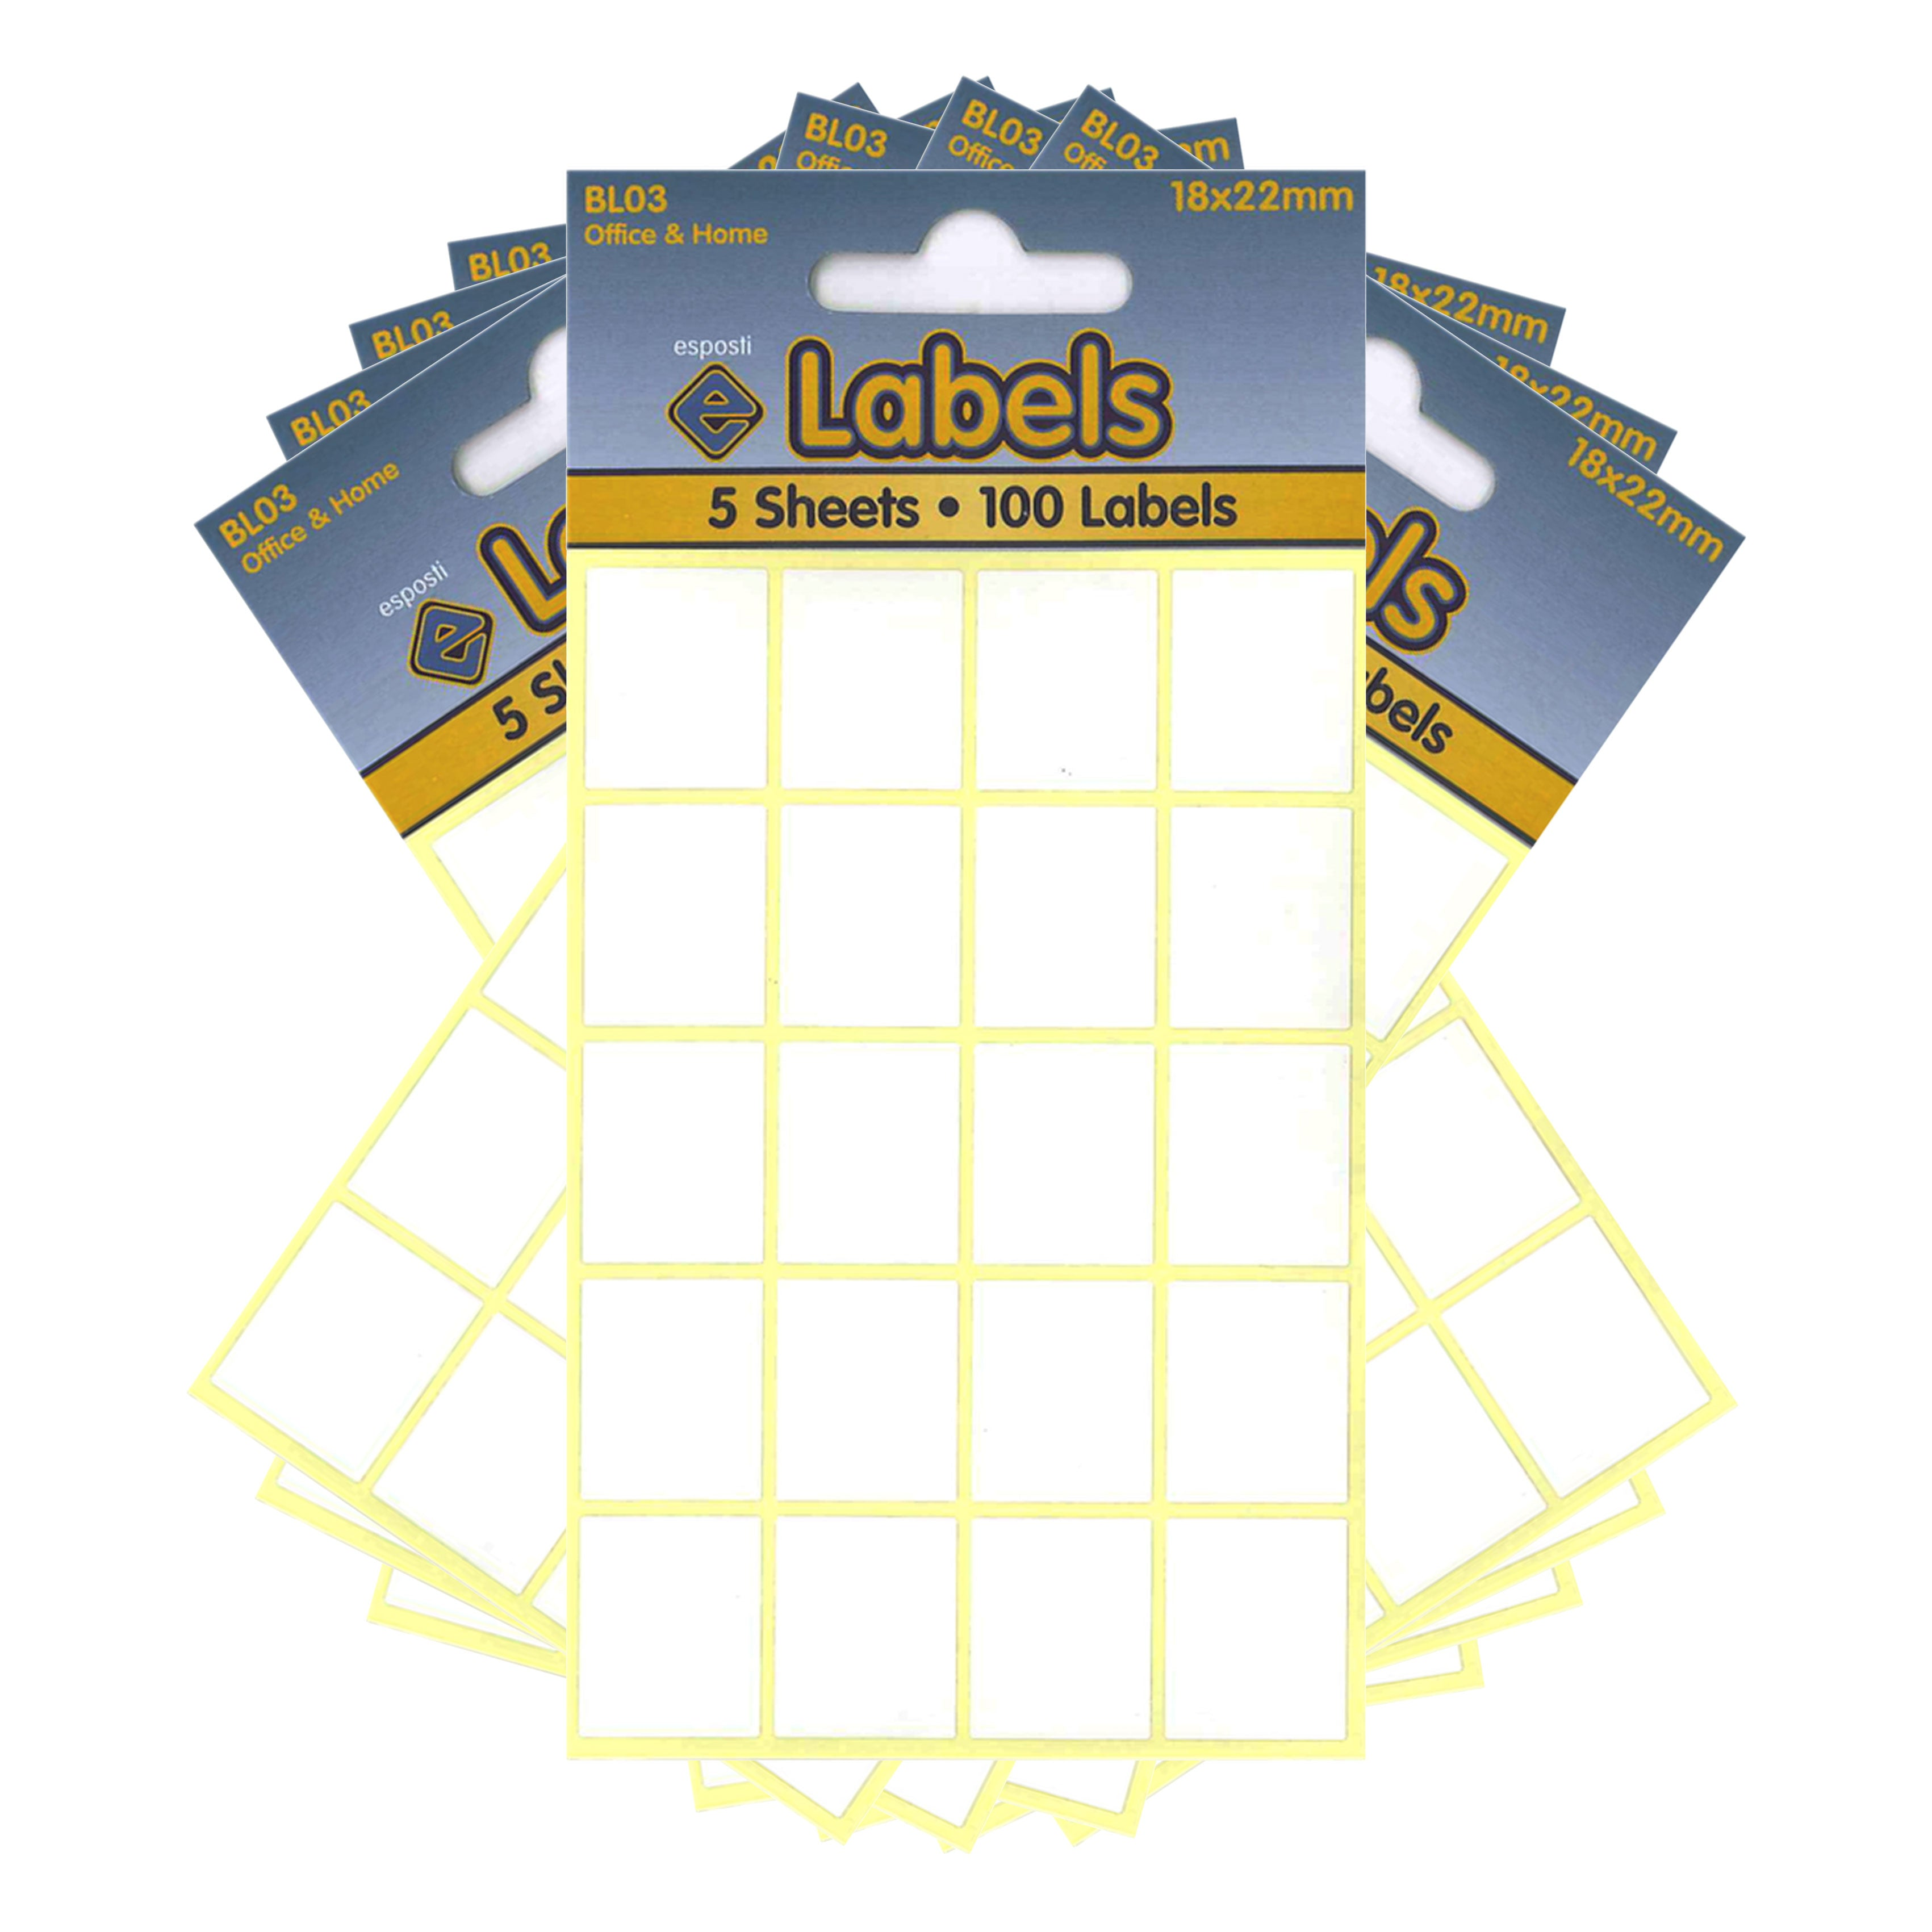 Esposti All Purpose Multi Use Sticky Labels - Self Adhesive - White - 18x22mm - 10 Packs Containing 1000 Stickers